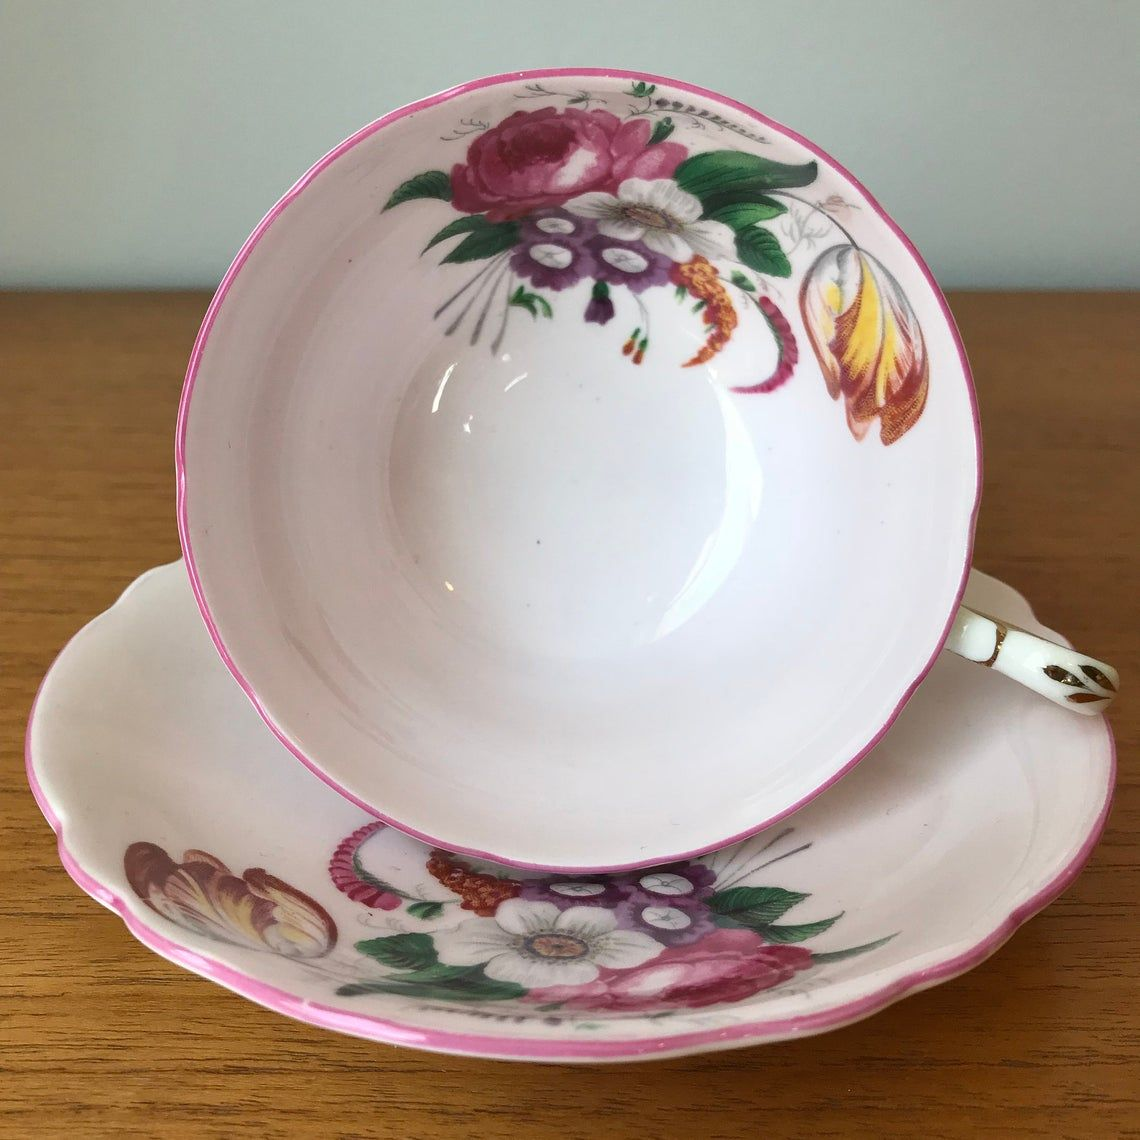 Vintage Paragon Pink Teacup and Saucer, Tulip and Rose Tea Cup and Saucer, English Floral Bone China, Double Warrant, 1940s